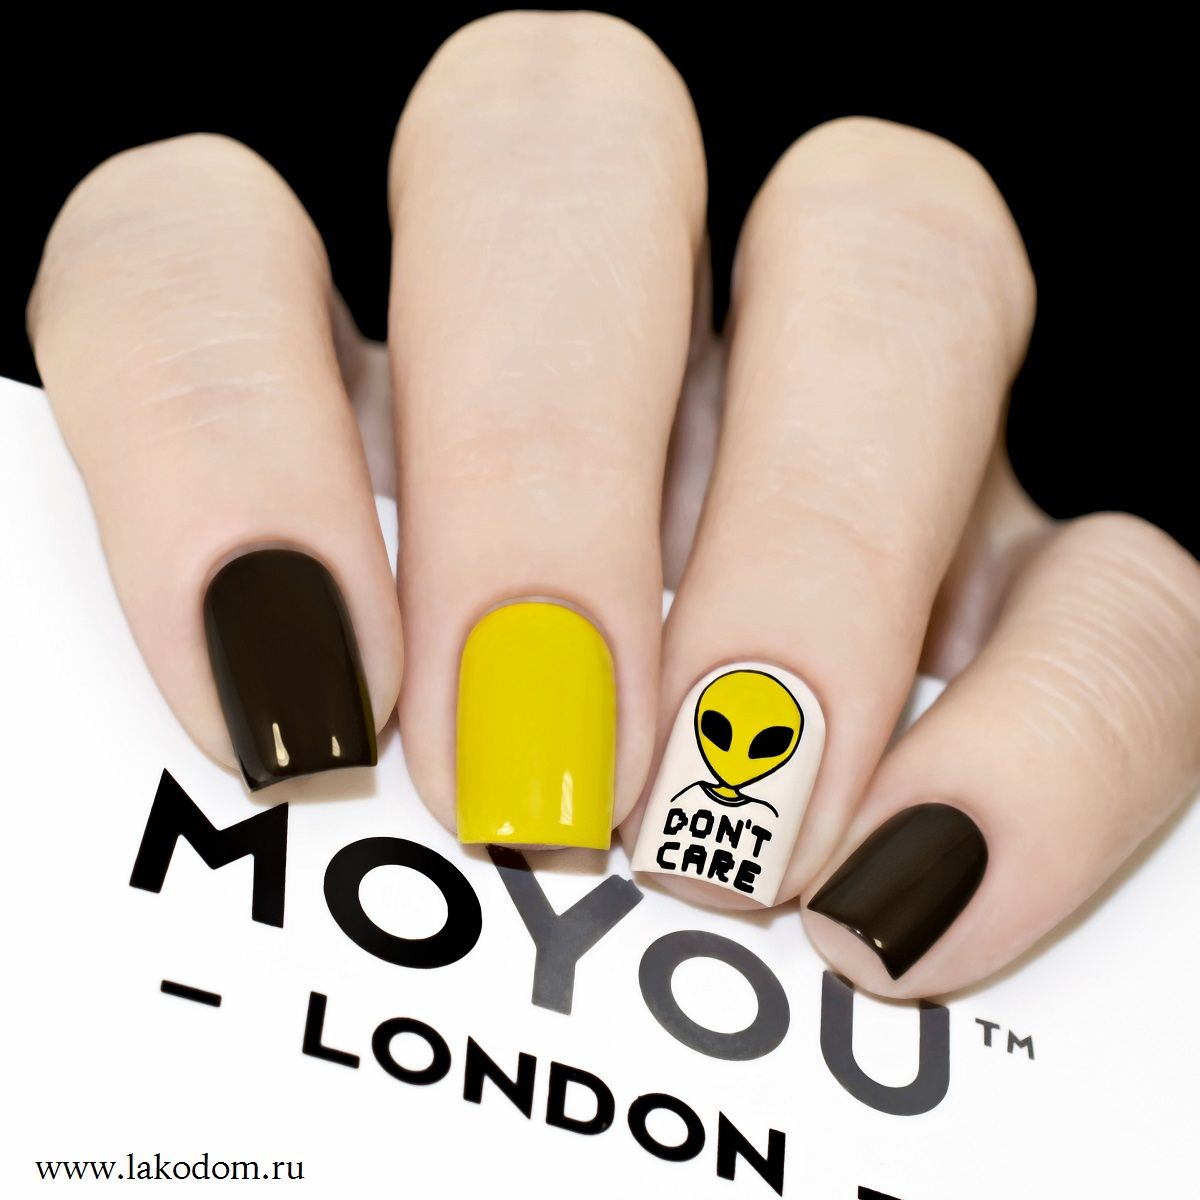 Pin Na Doske Moyou London Tumblr Girl Stamping Nail